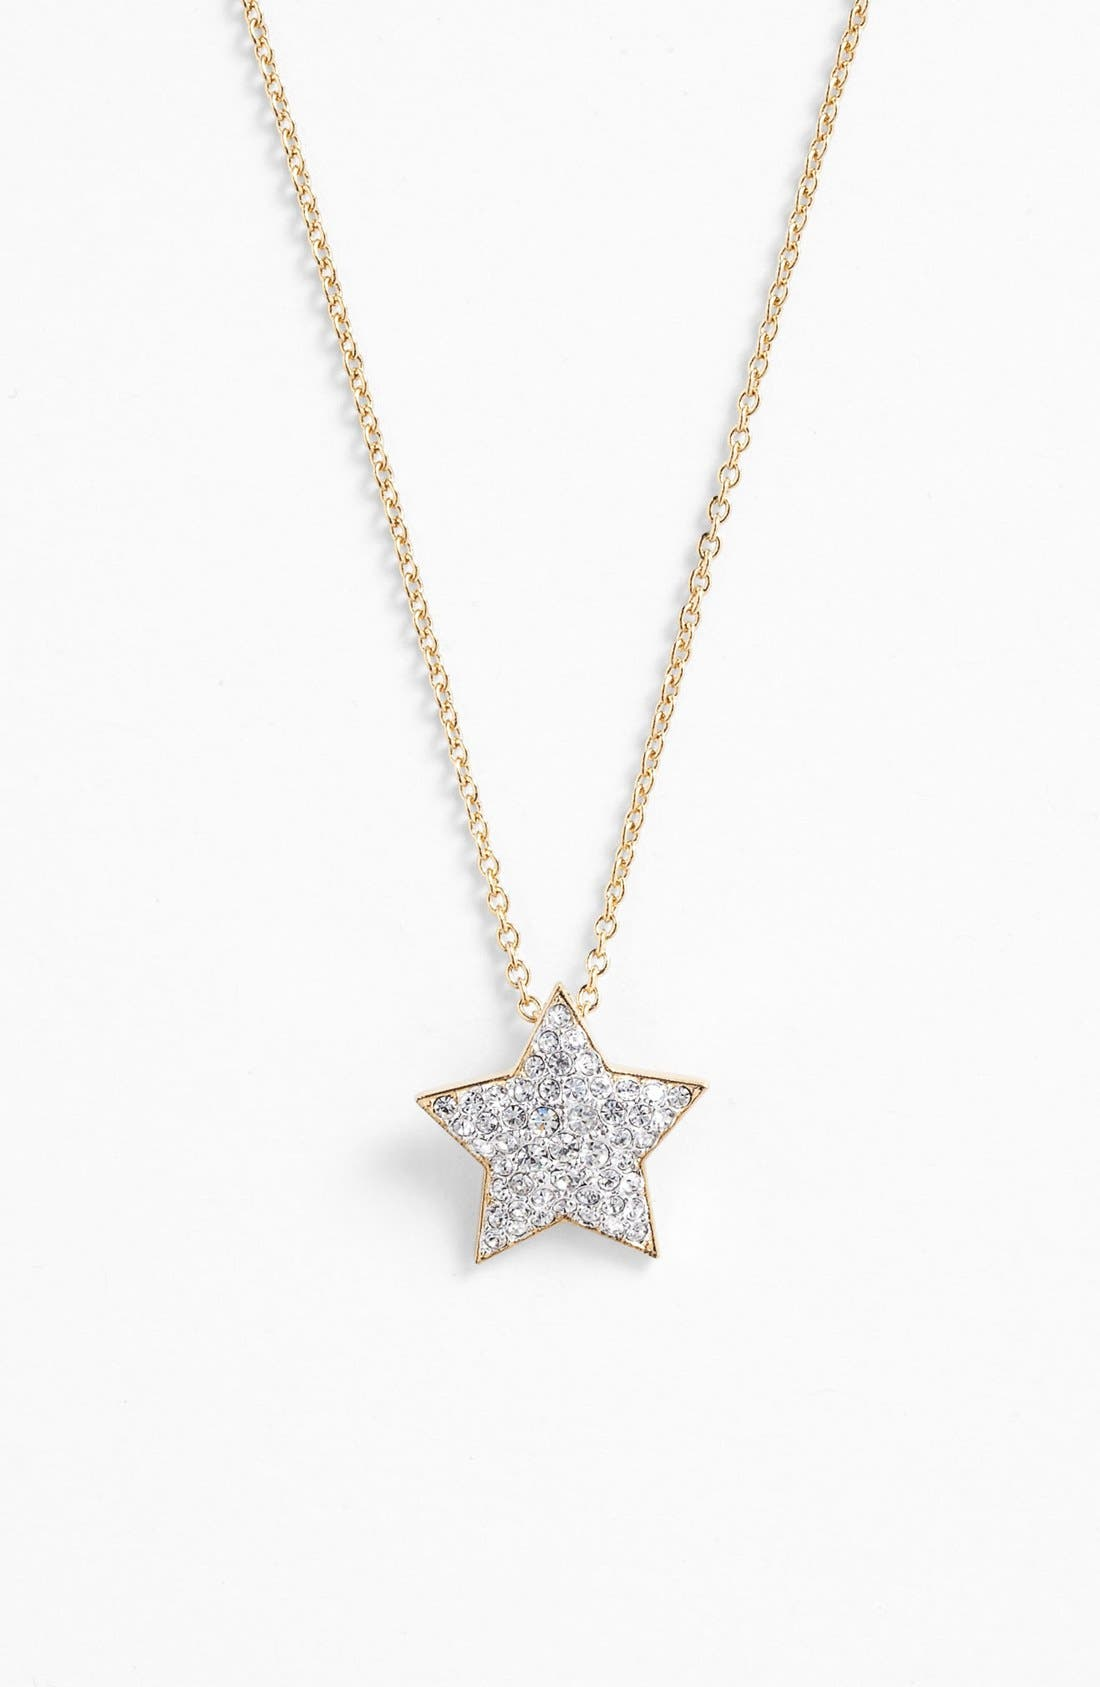 Alternate Image 1 Selected - Nadri 'Charmers' Pavé Symbol Pendant Necklace (Nordstrom Exclusive)